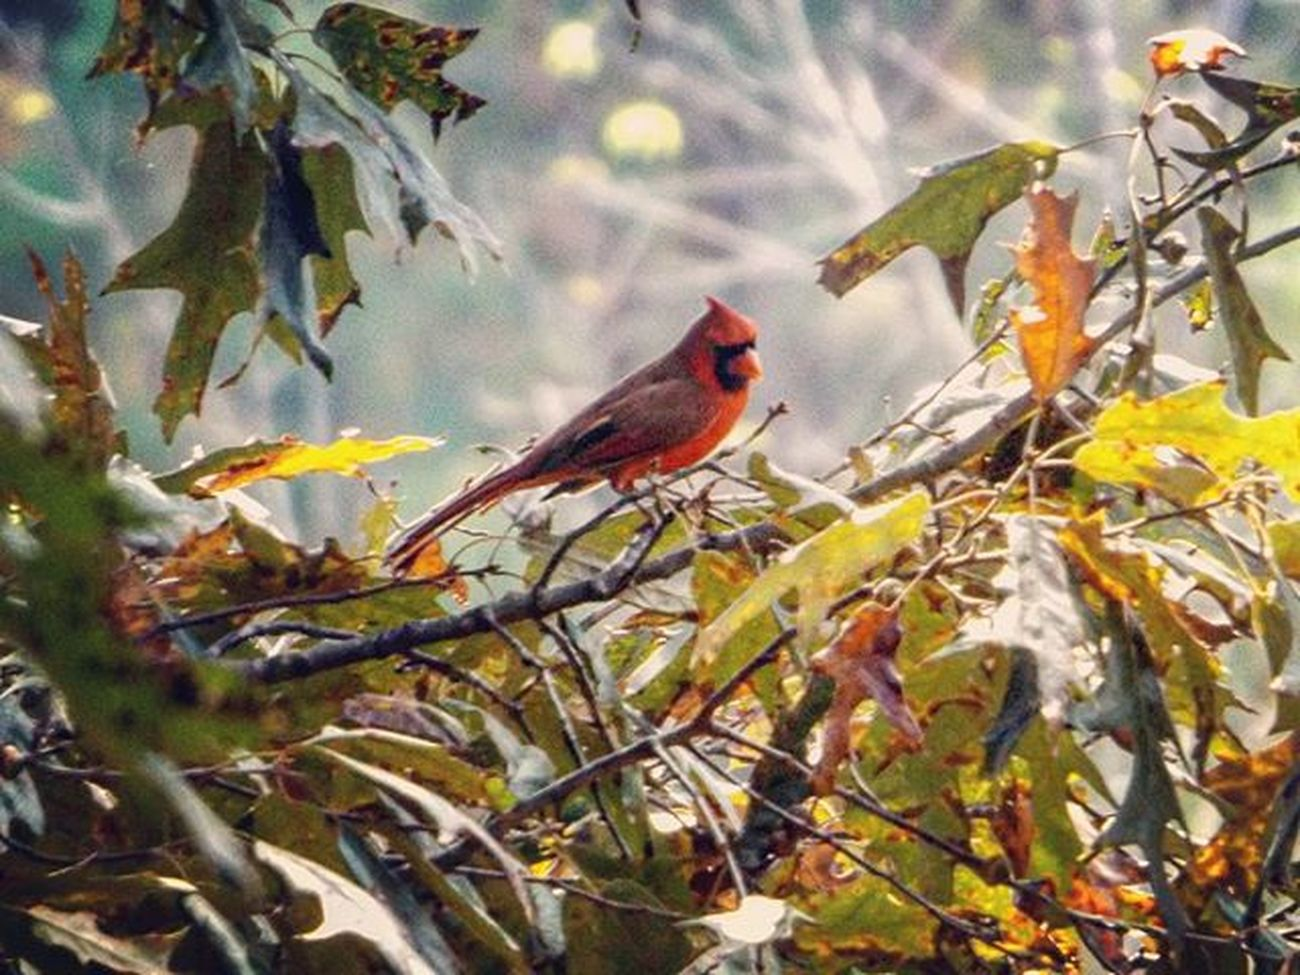 Cardinal I spotted the other day. Redbird Cardinal Birdwatching Bird Autumn Fall Fallleaves 🍁🍂🍁 Leaves